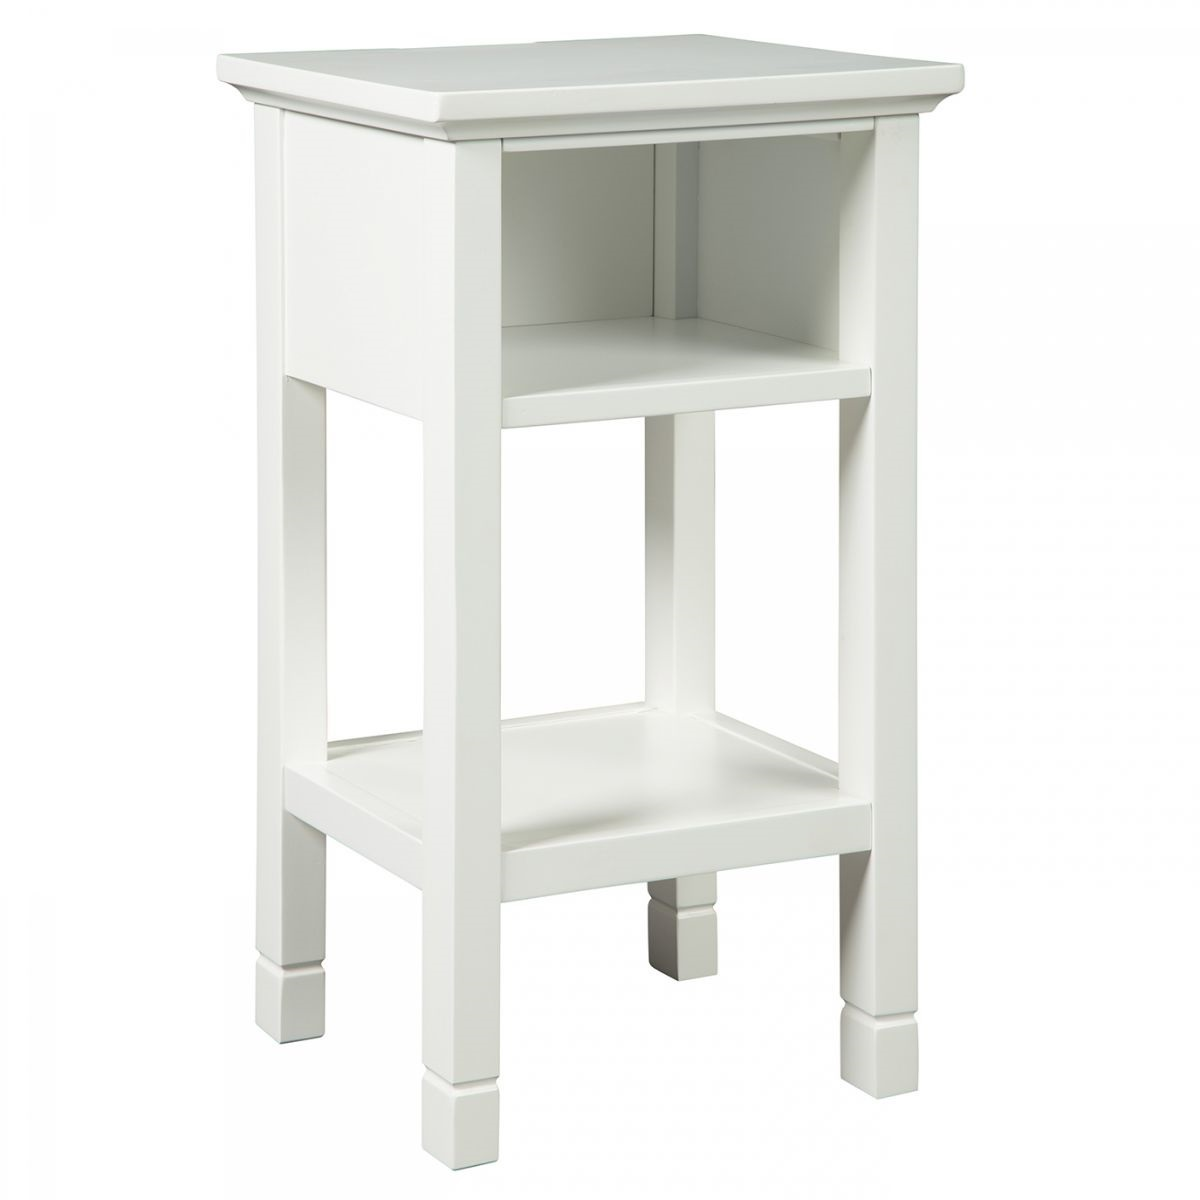 marnville white accent table with usb port badcock more ture reclaimed wood furniture set side tables chestnut dining rustic cocktail low round kitchen and chairs triller target